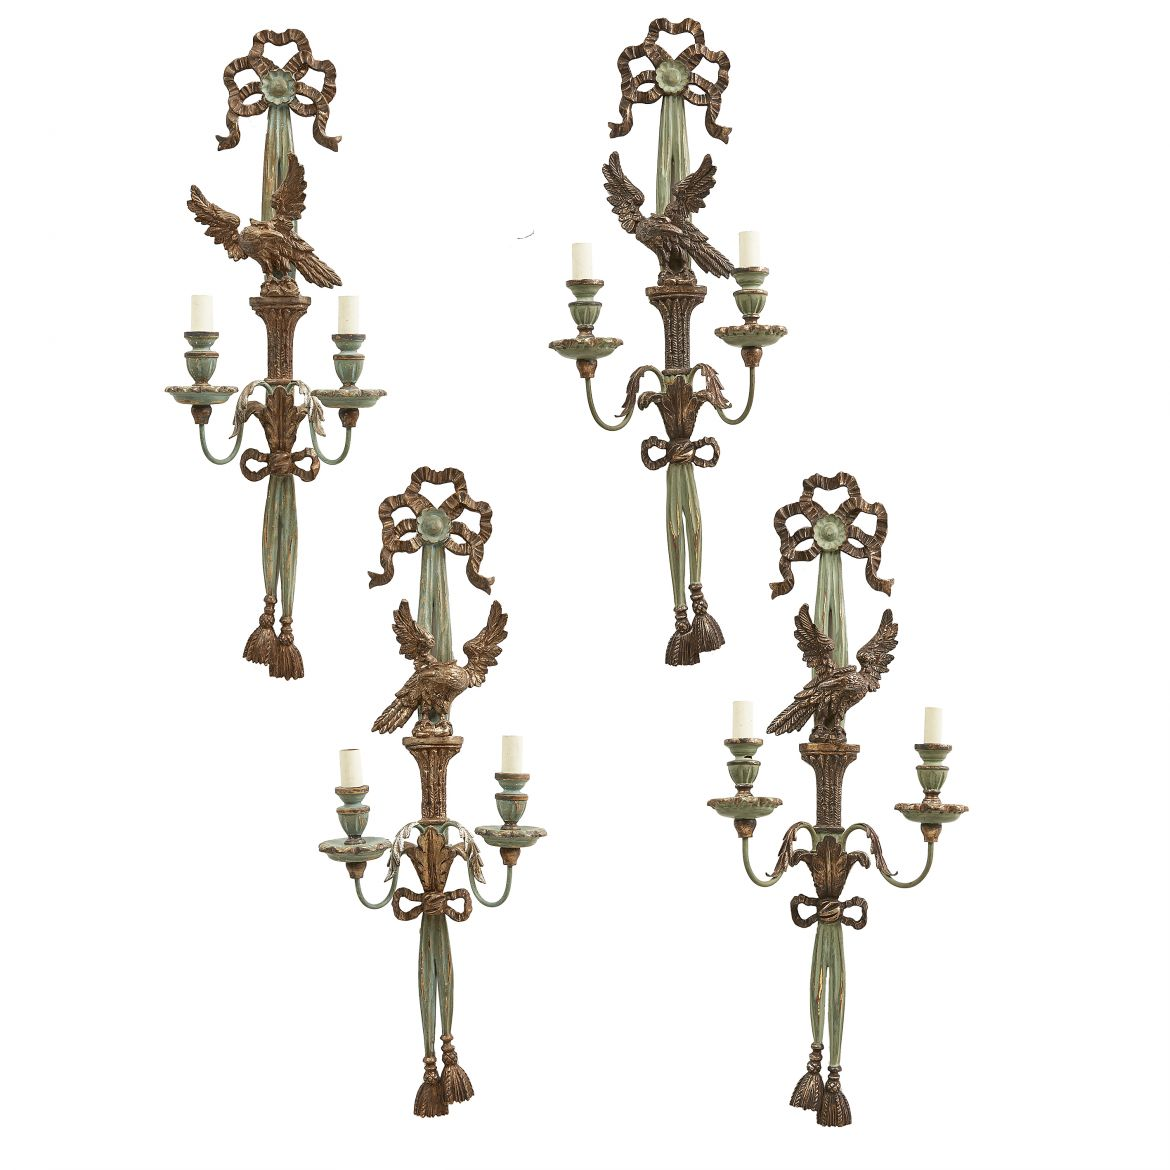 Set 4 Tassle Sconces